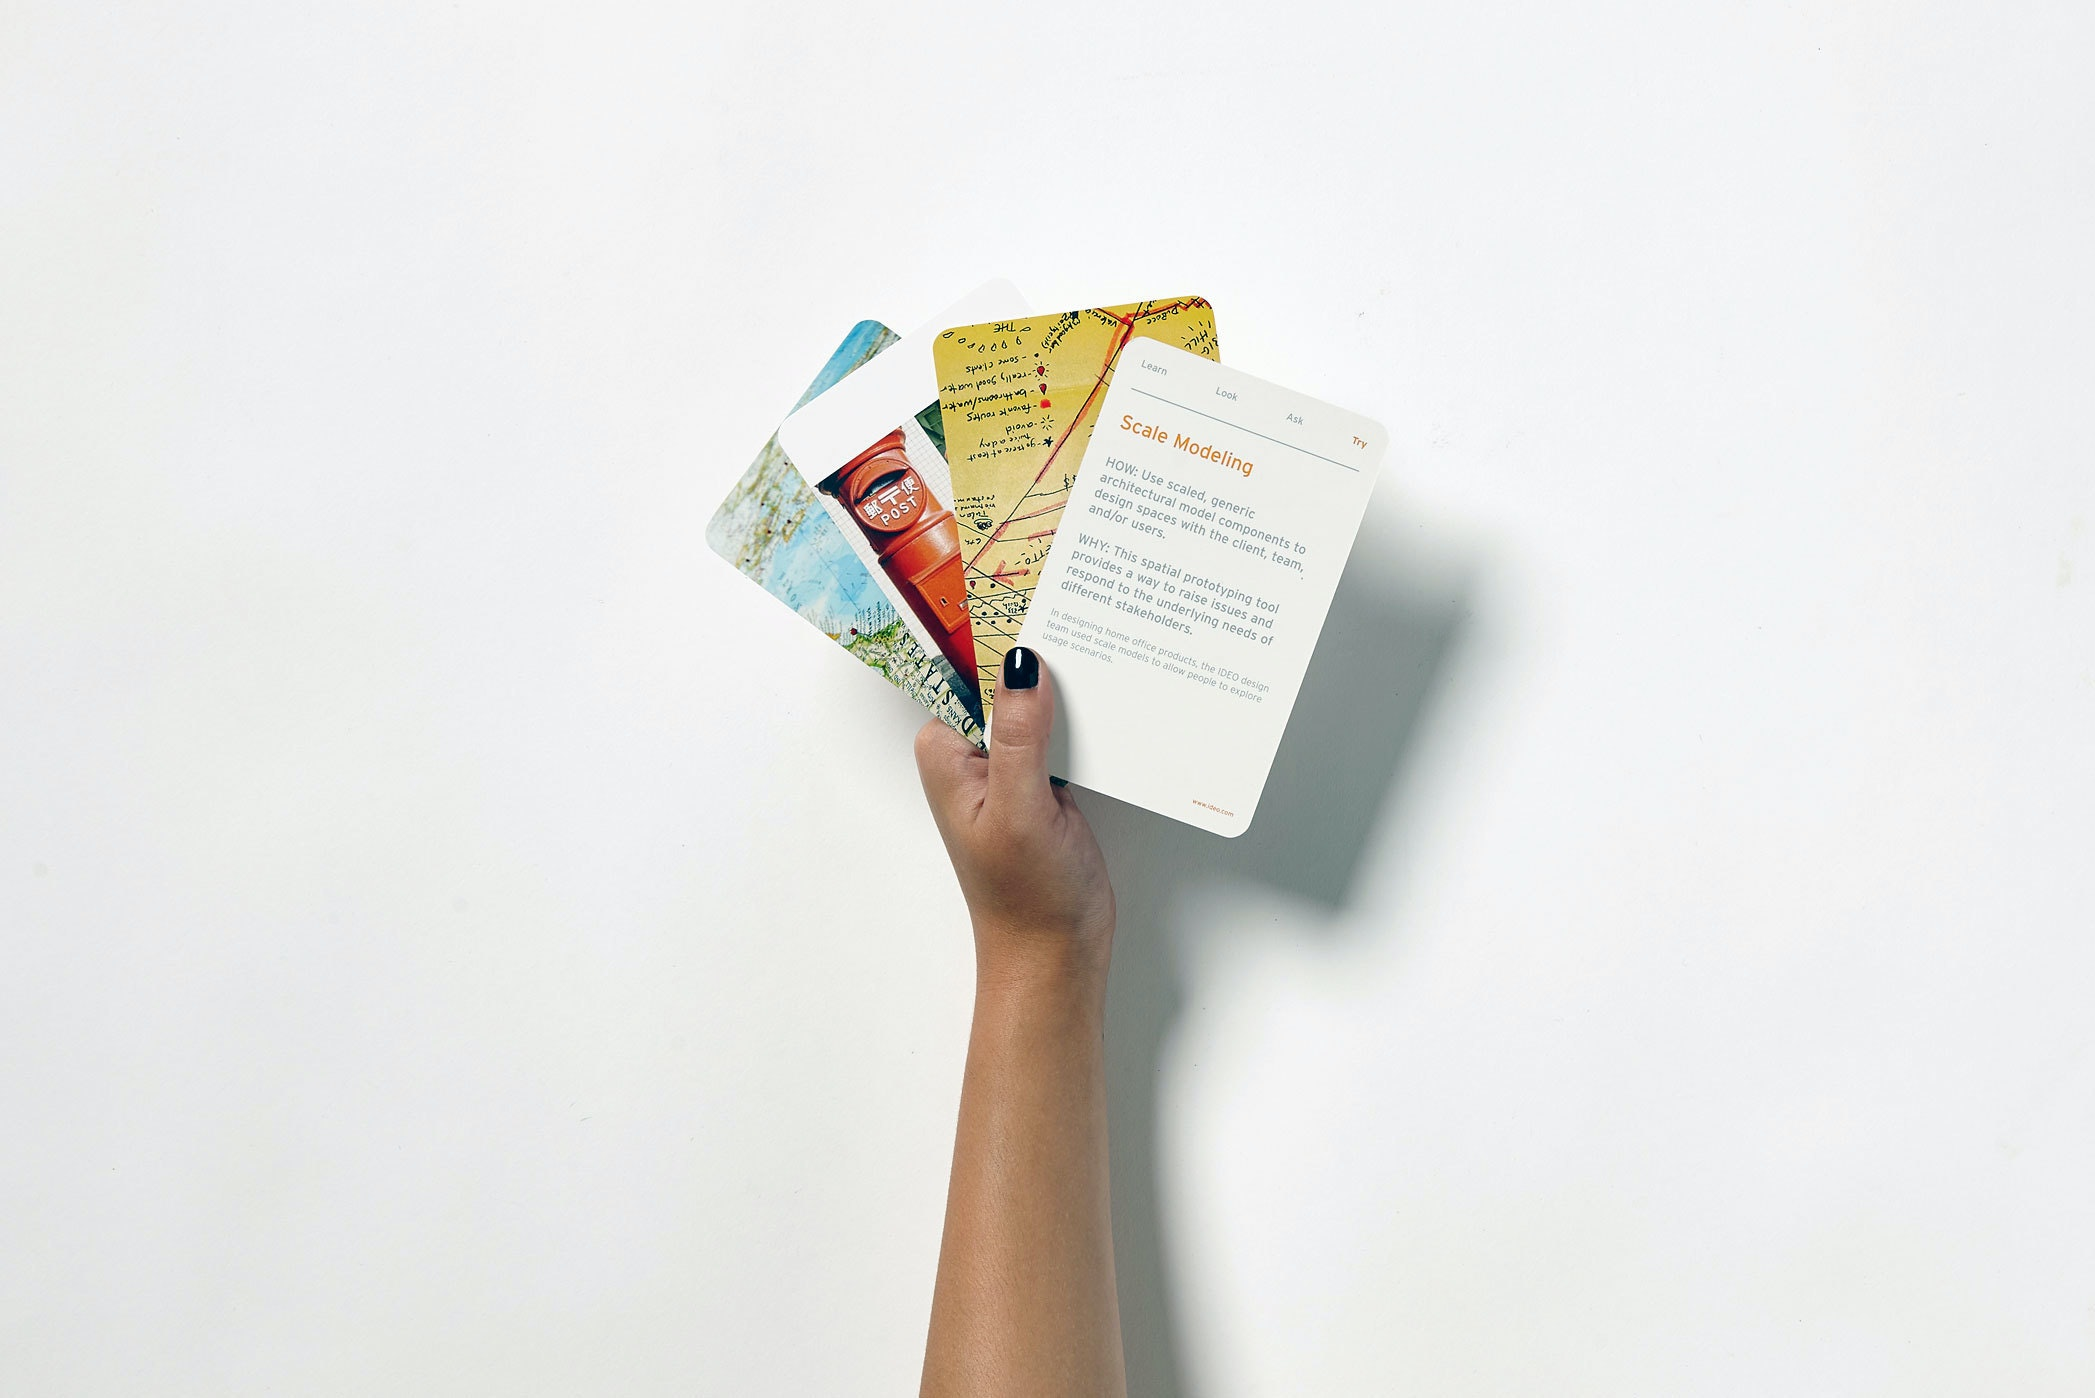 Ideo Books Method Cards In Hand